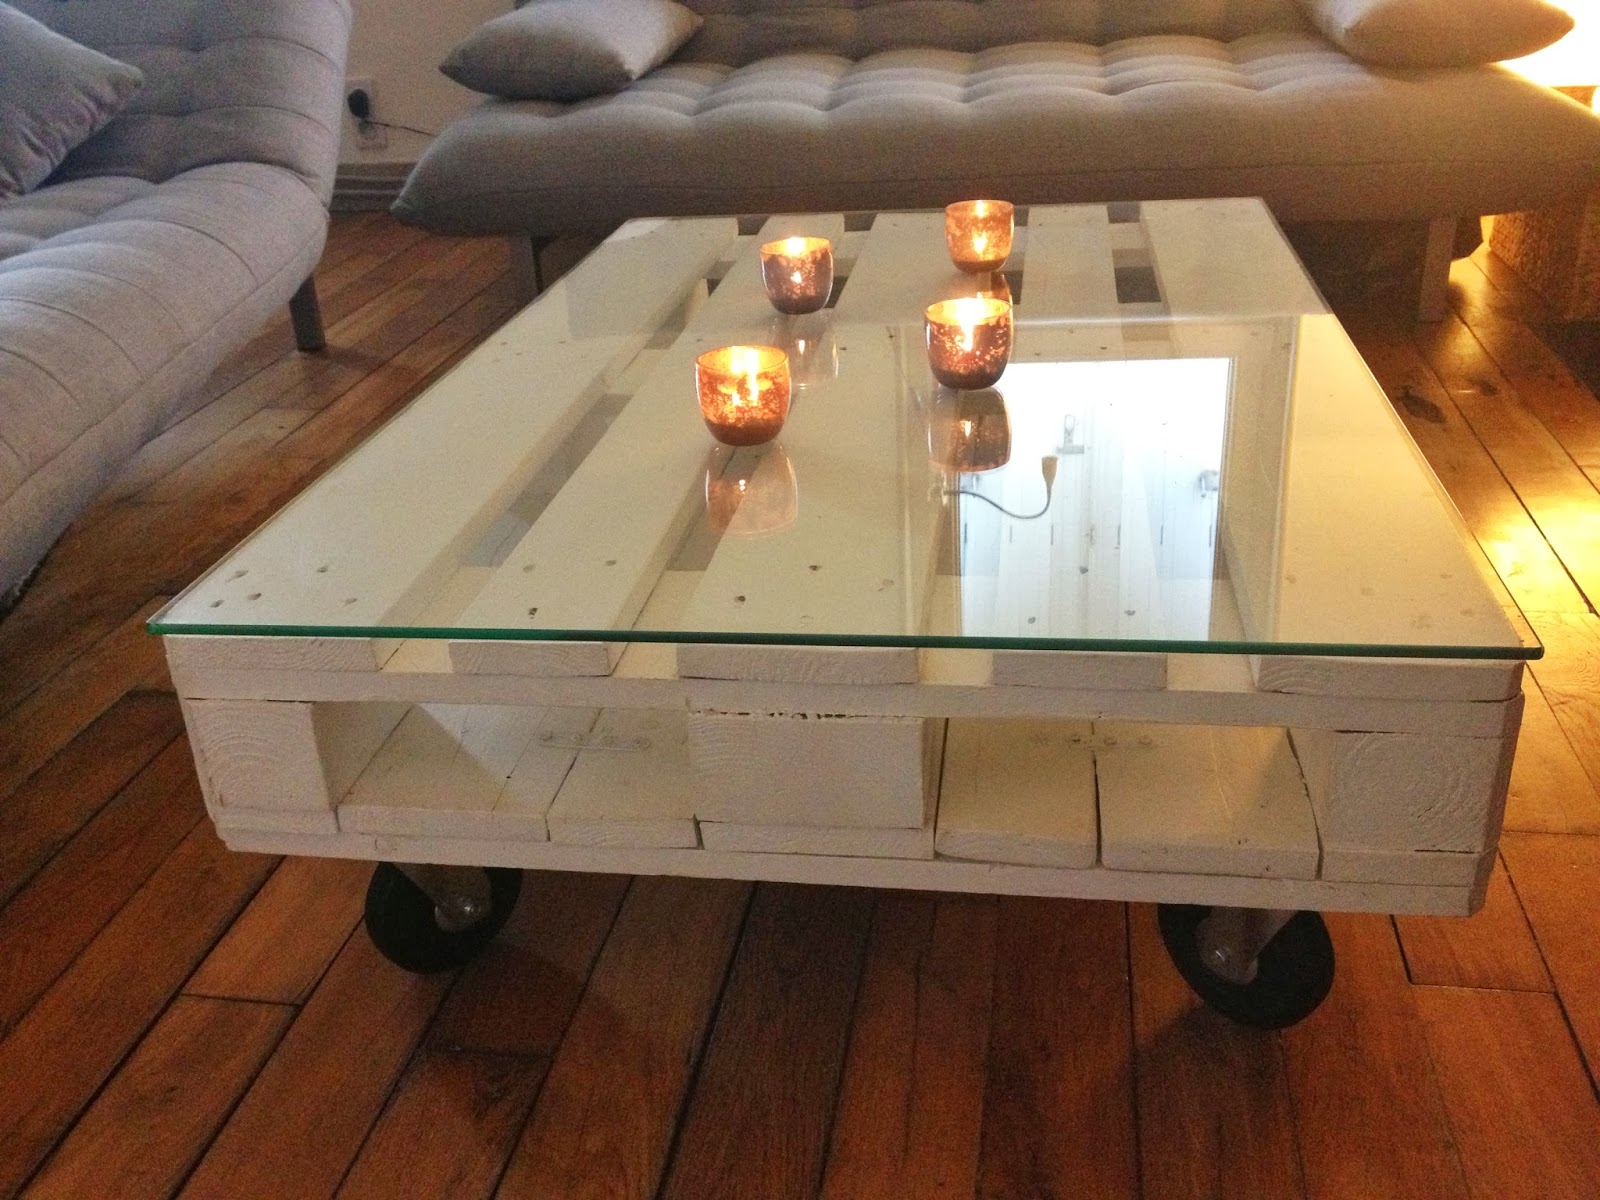 Diy une table basse en palette la clamartoise - Table basse fait maison ...